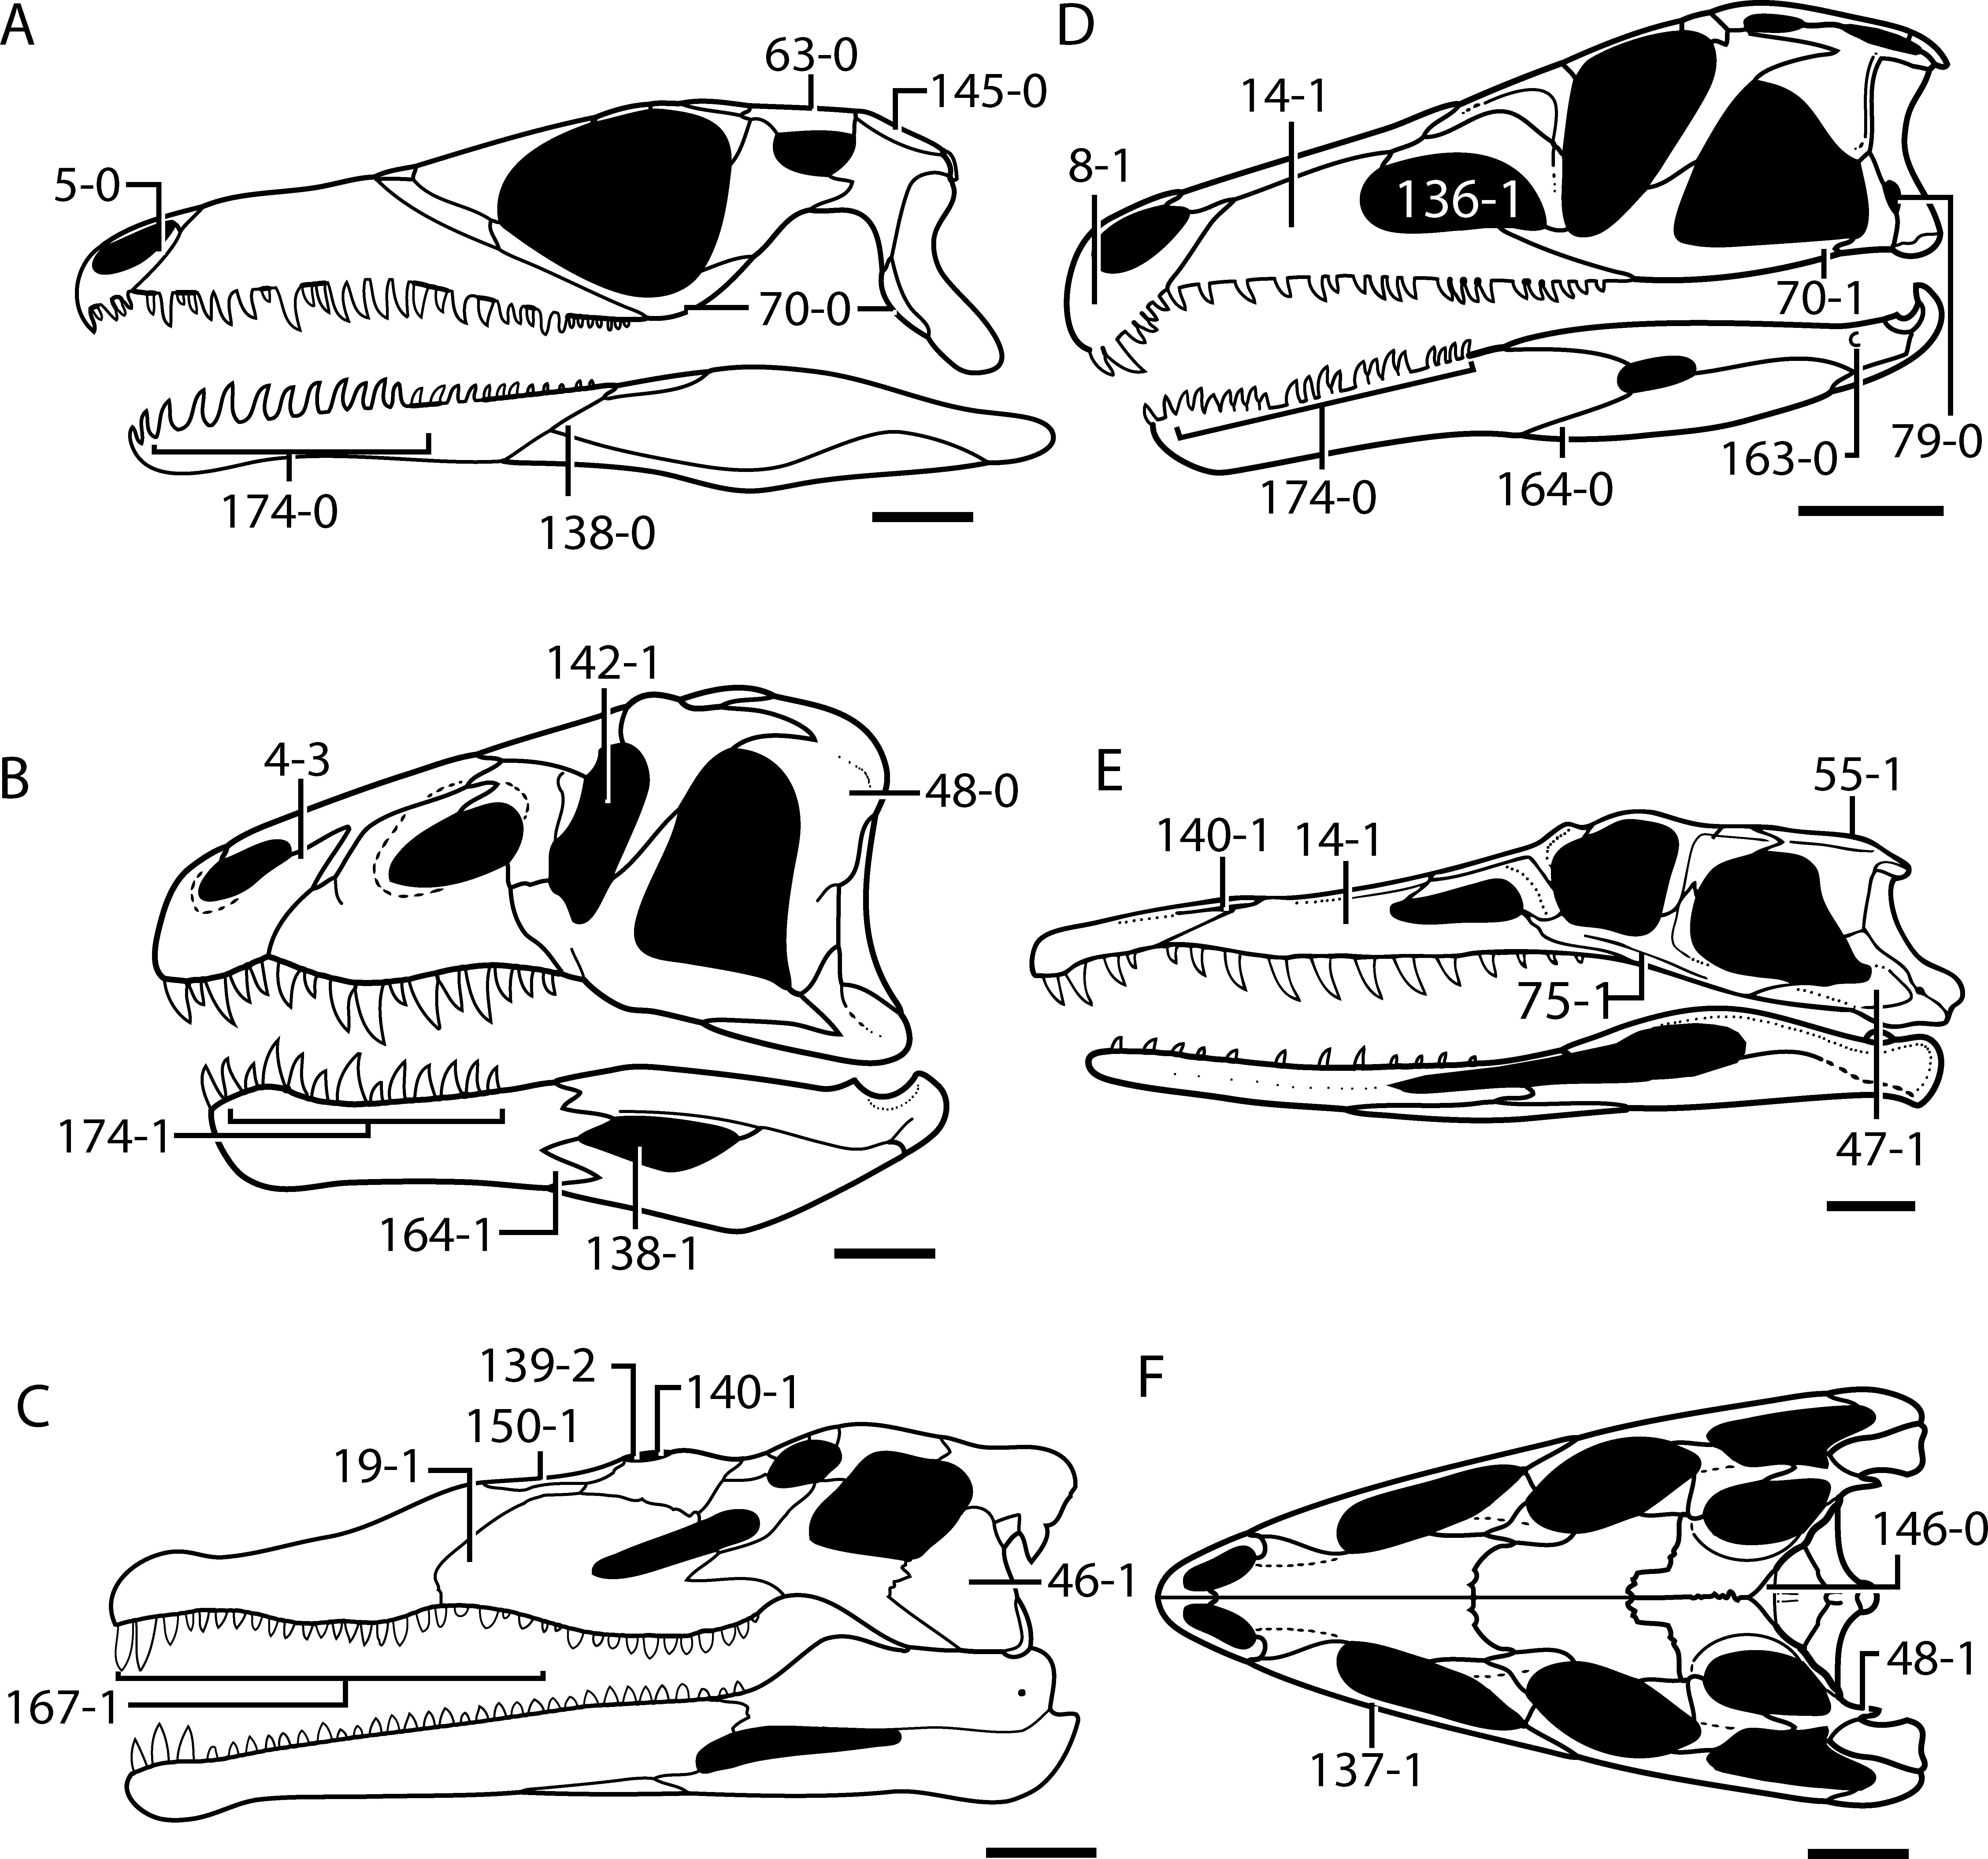 The Early Evolution of Archosaurs: Relationships and the